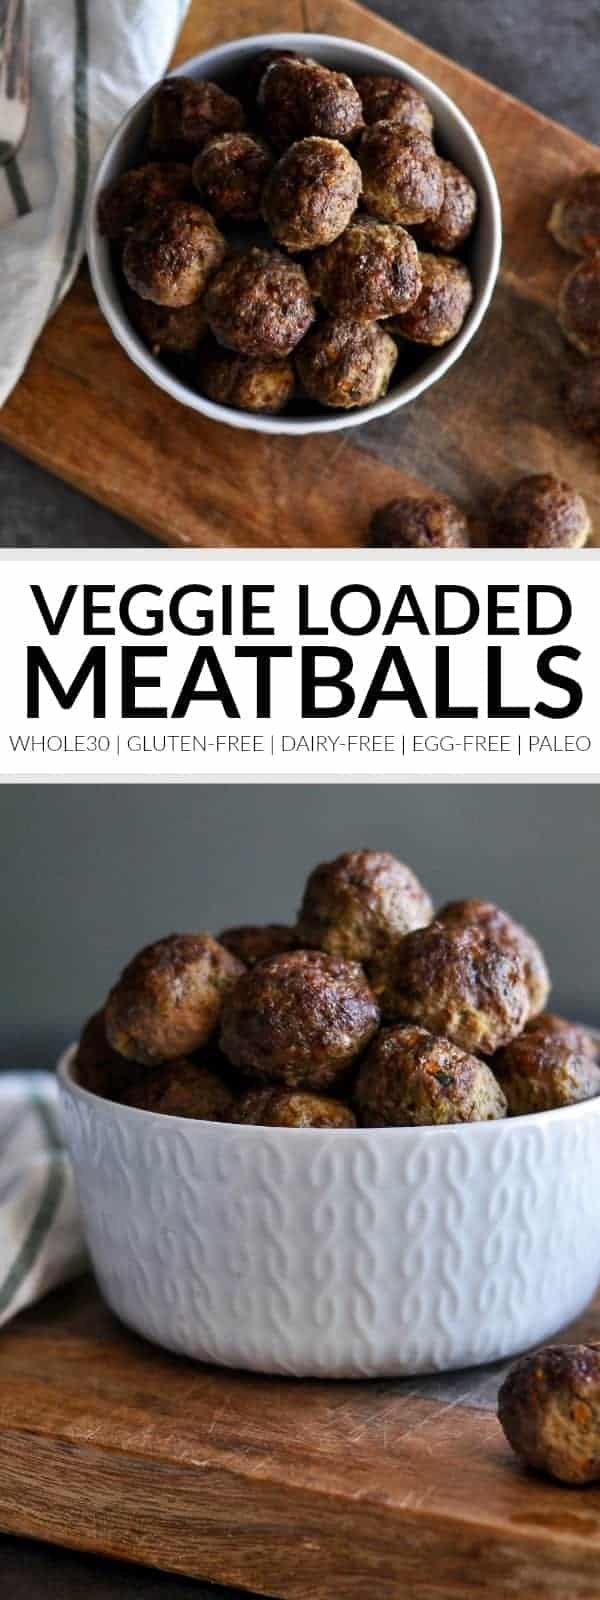 Pinterest image for Baked Veggie Loaded Meatballs